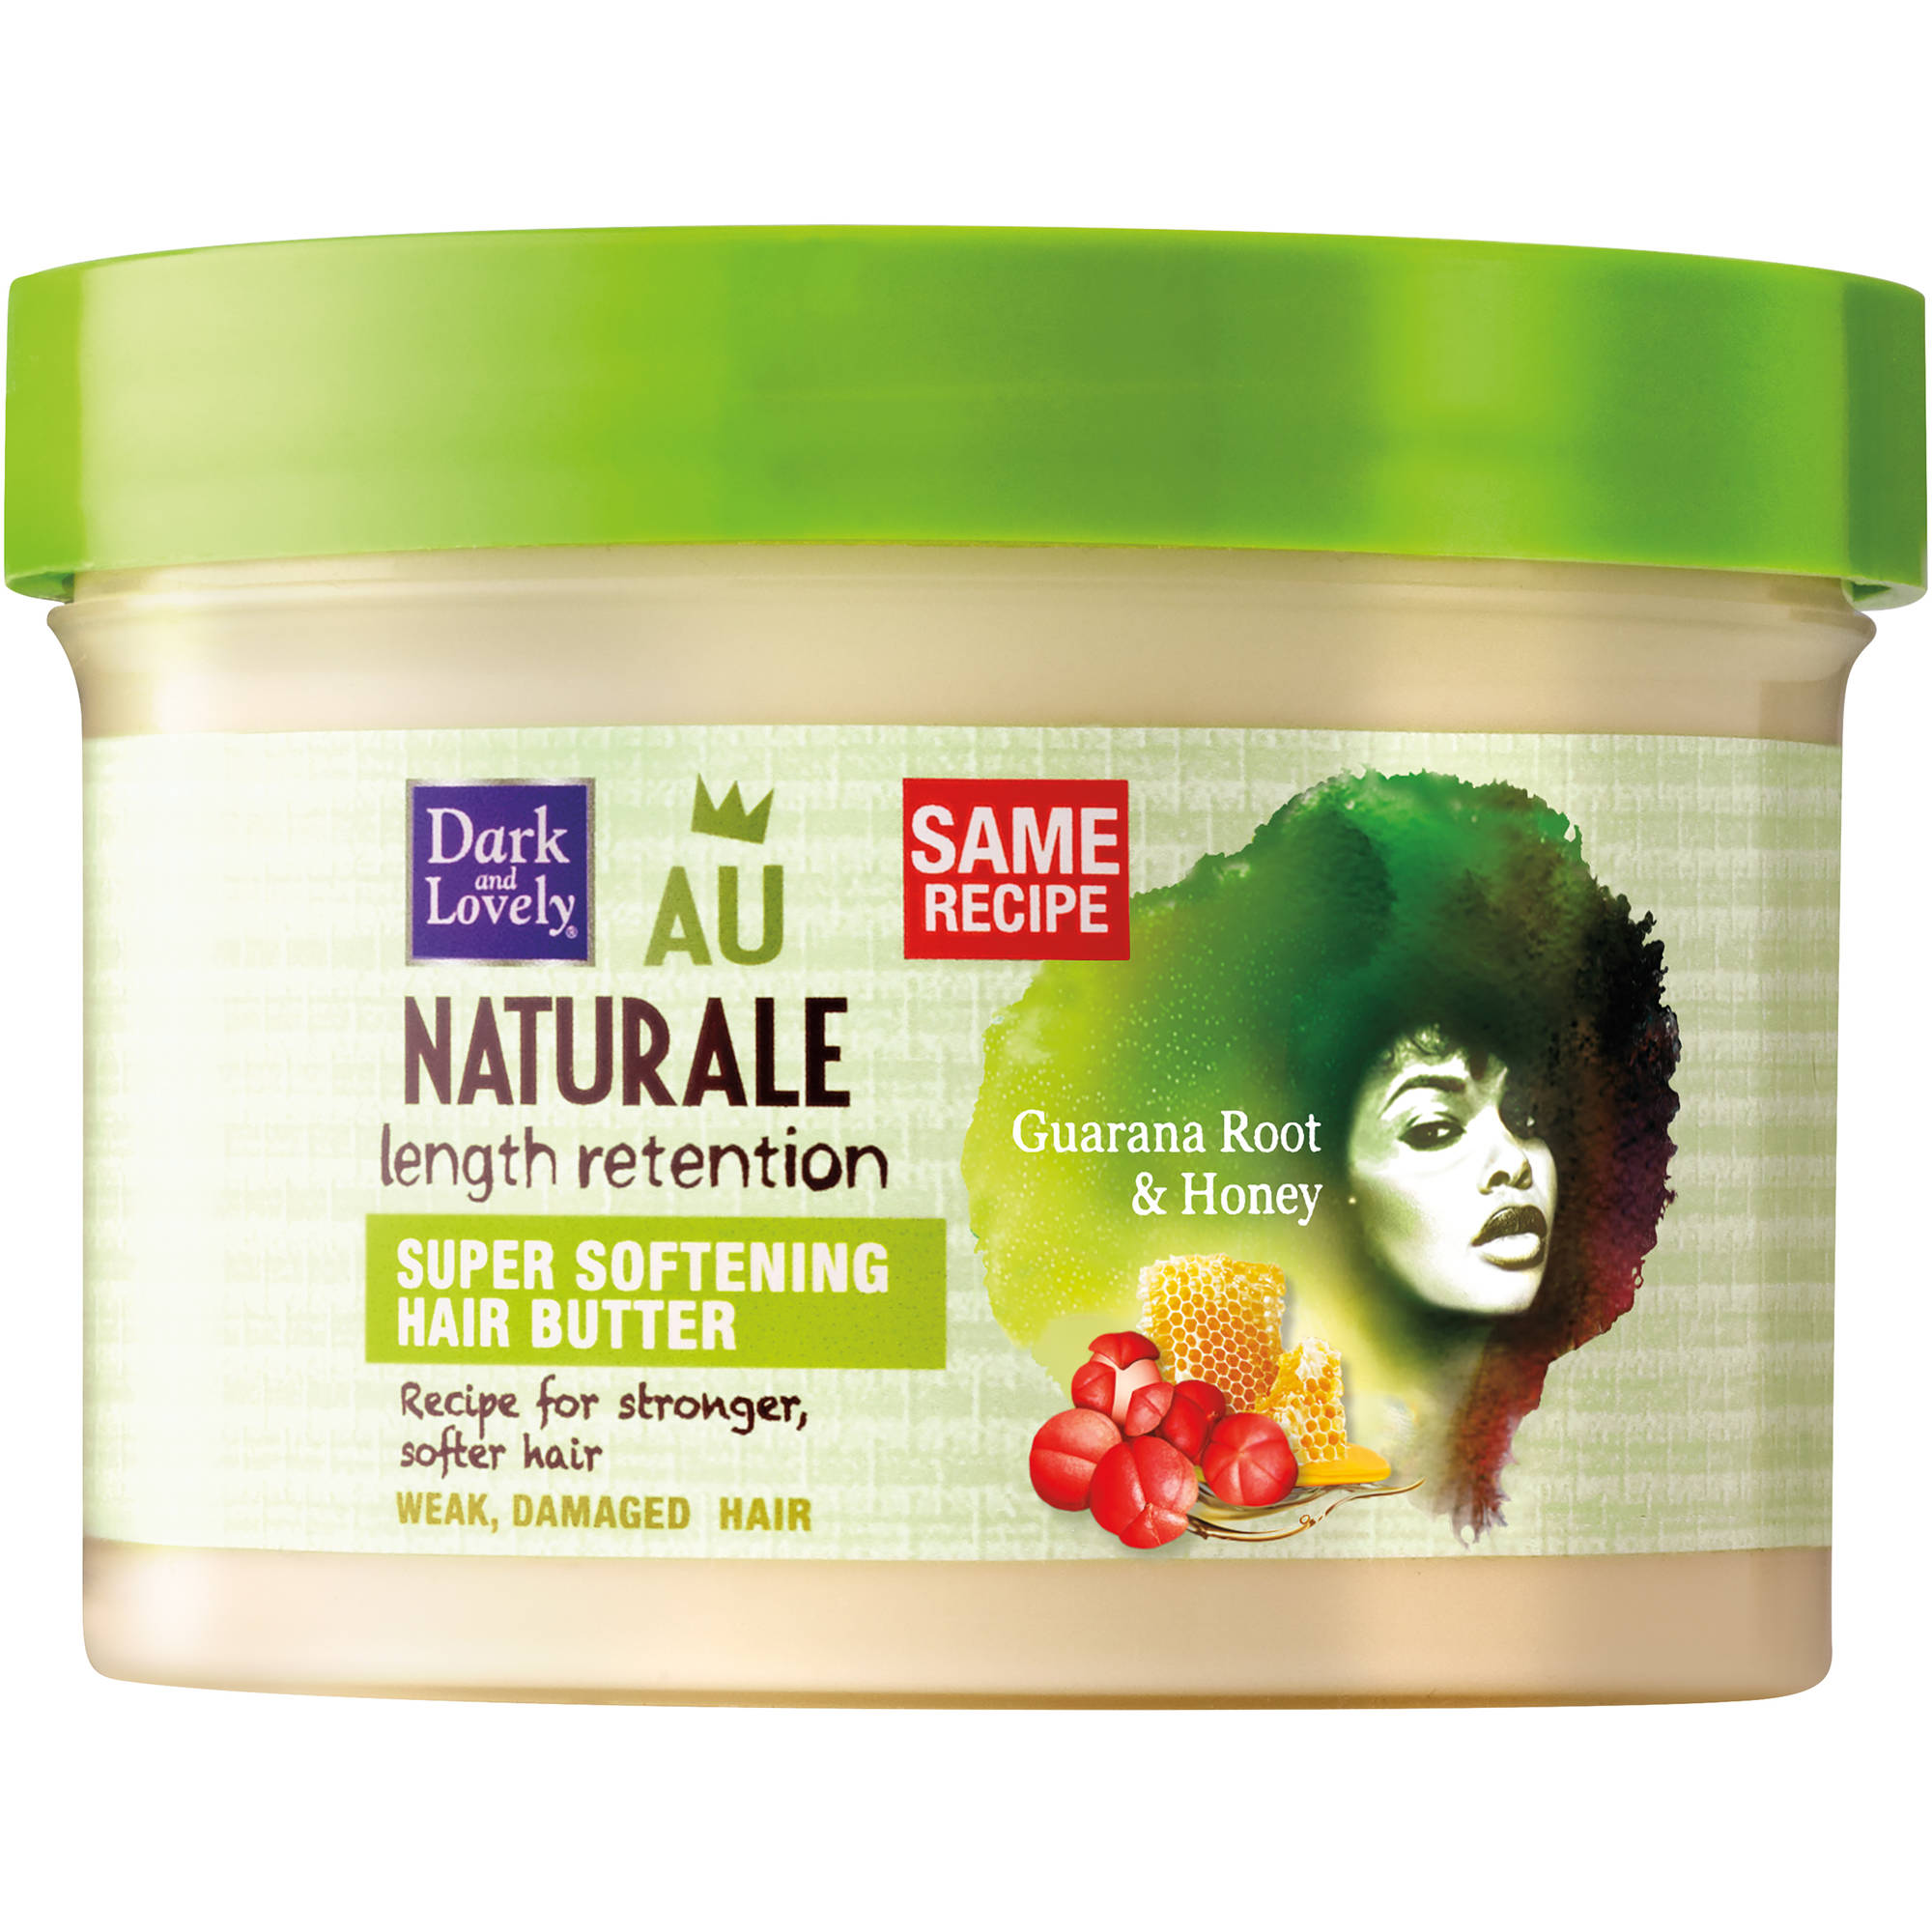 Dark and Lovely Au Naturale Super Softening Hair Butter, 8 oz